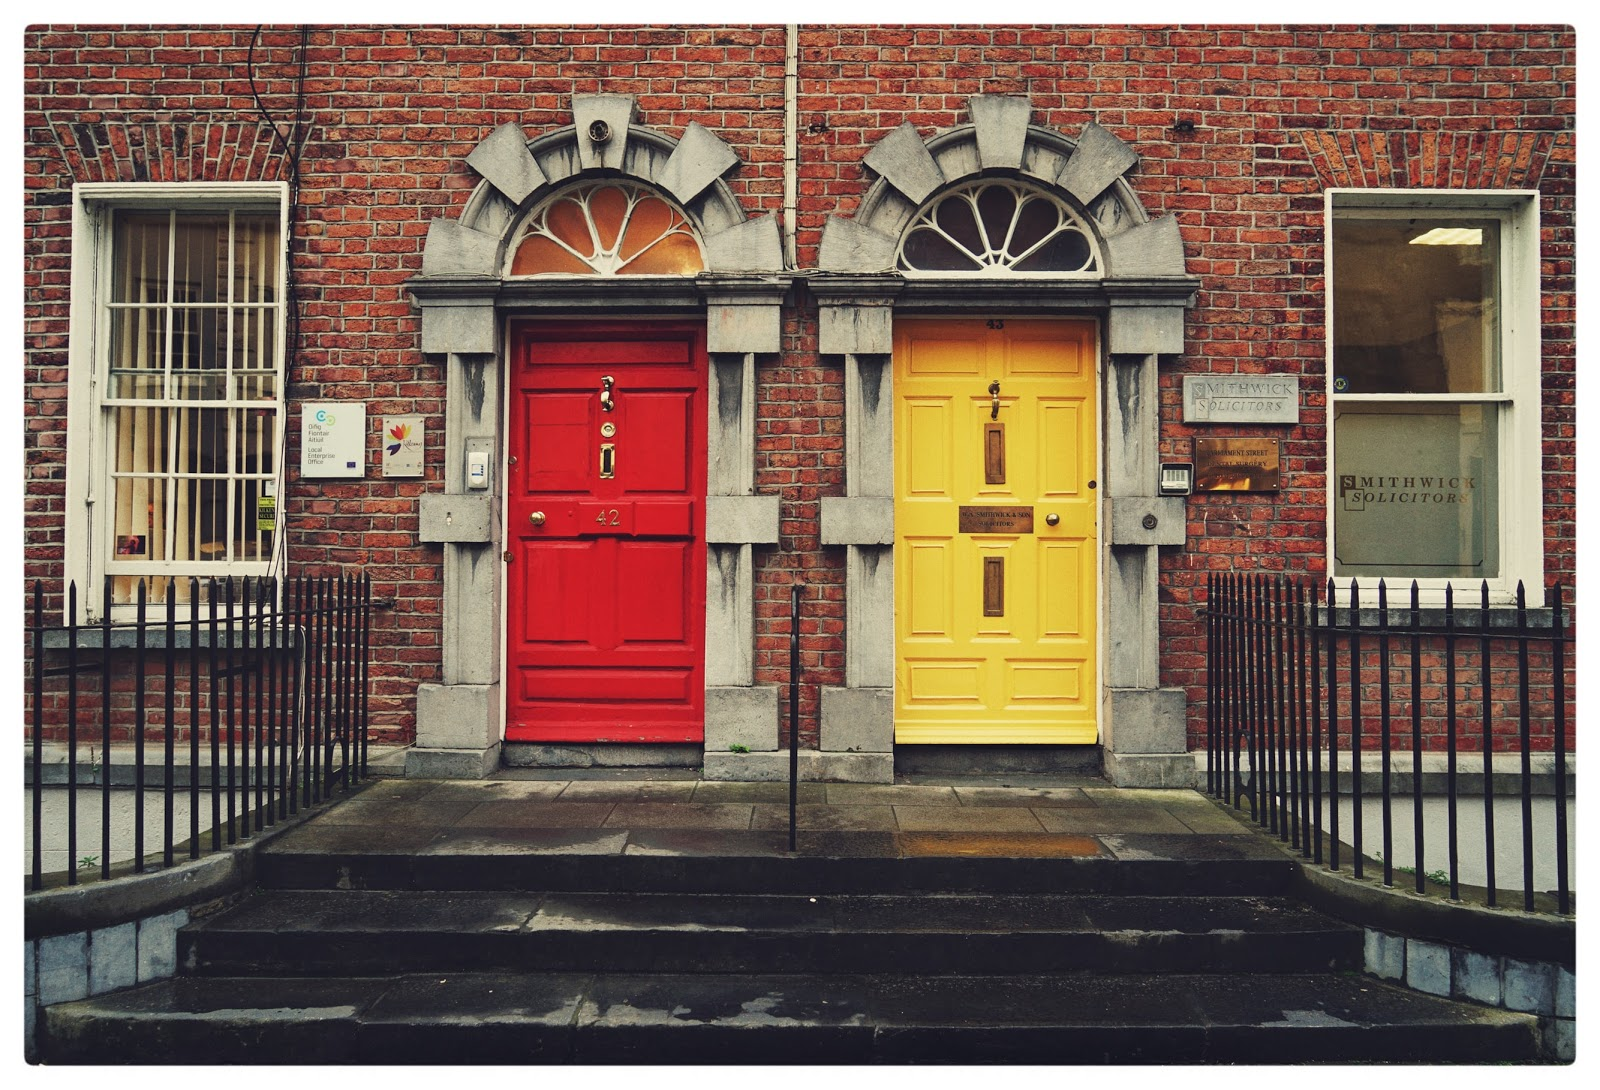 Hiring manager: Red door and yellow door side-by-side